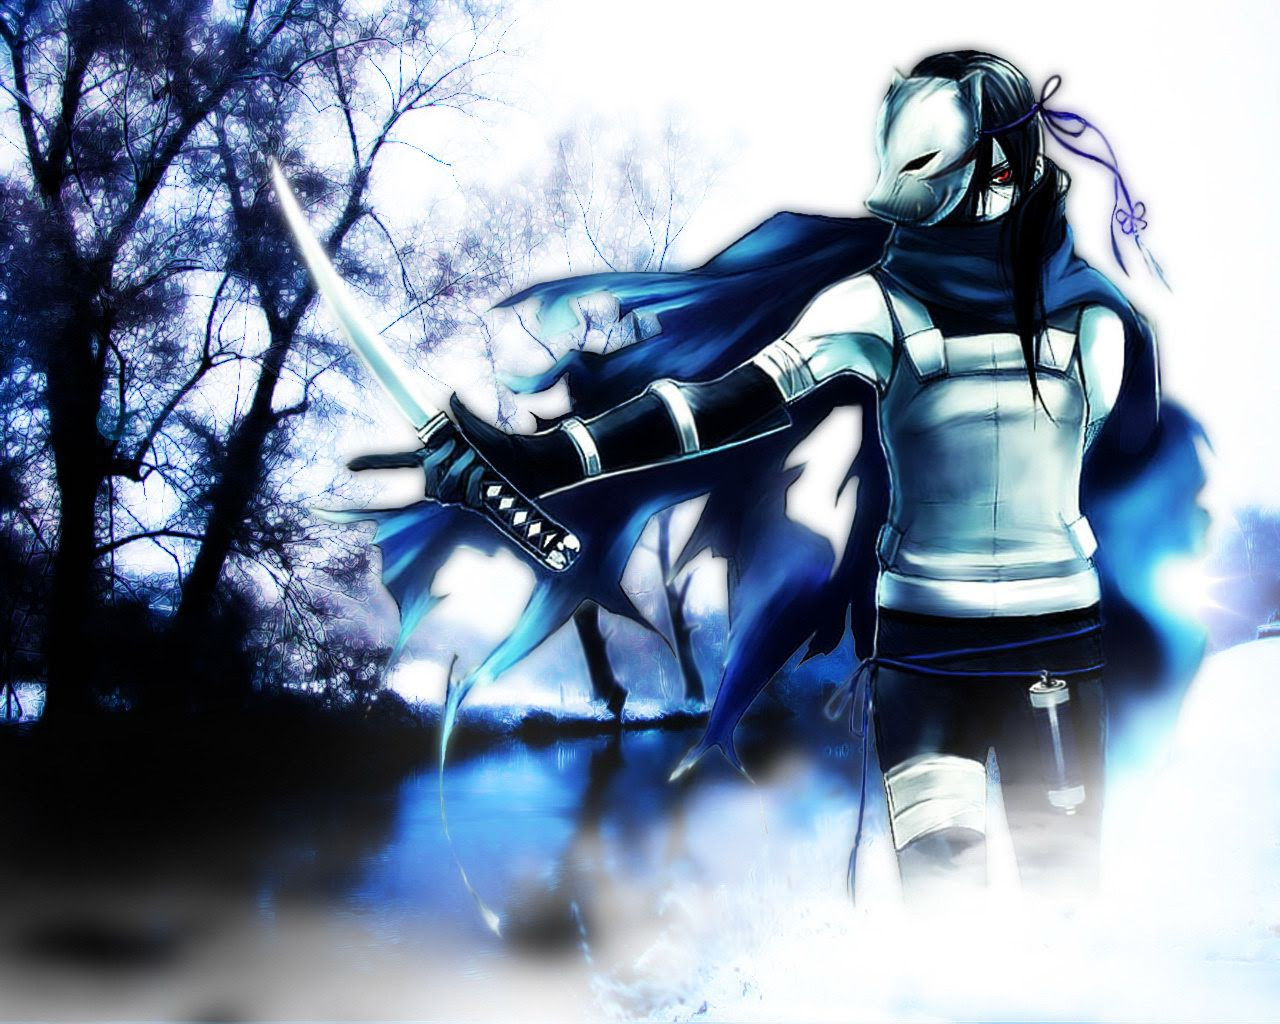 Awesome Anime Backgrounds Sf Wallpaper